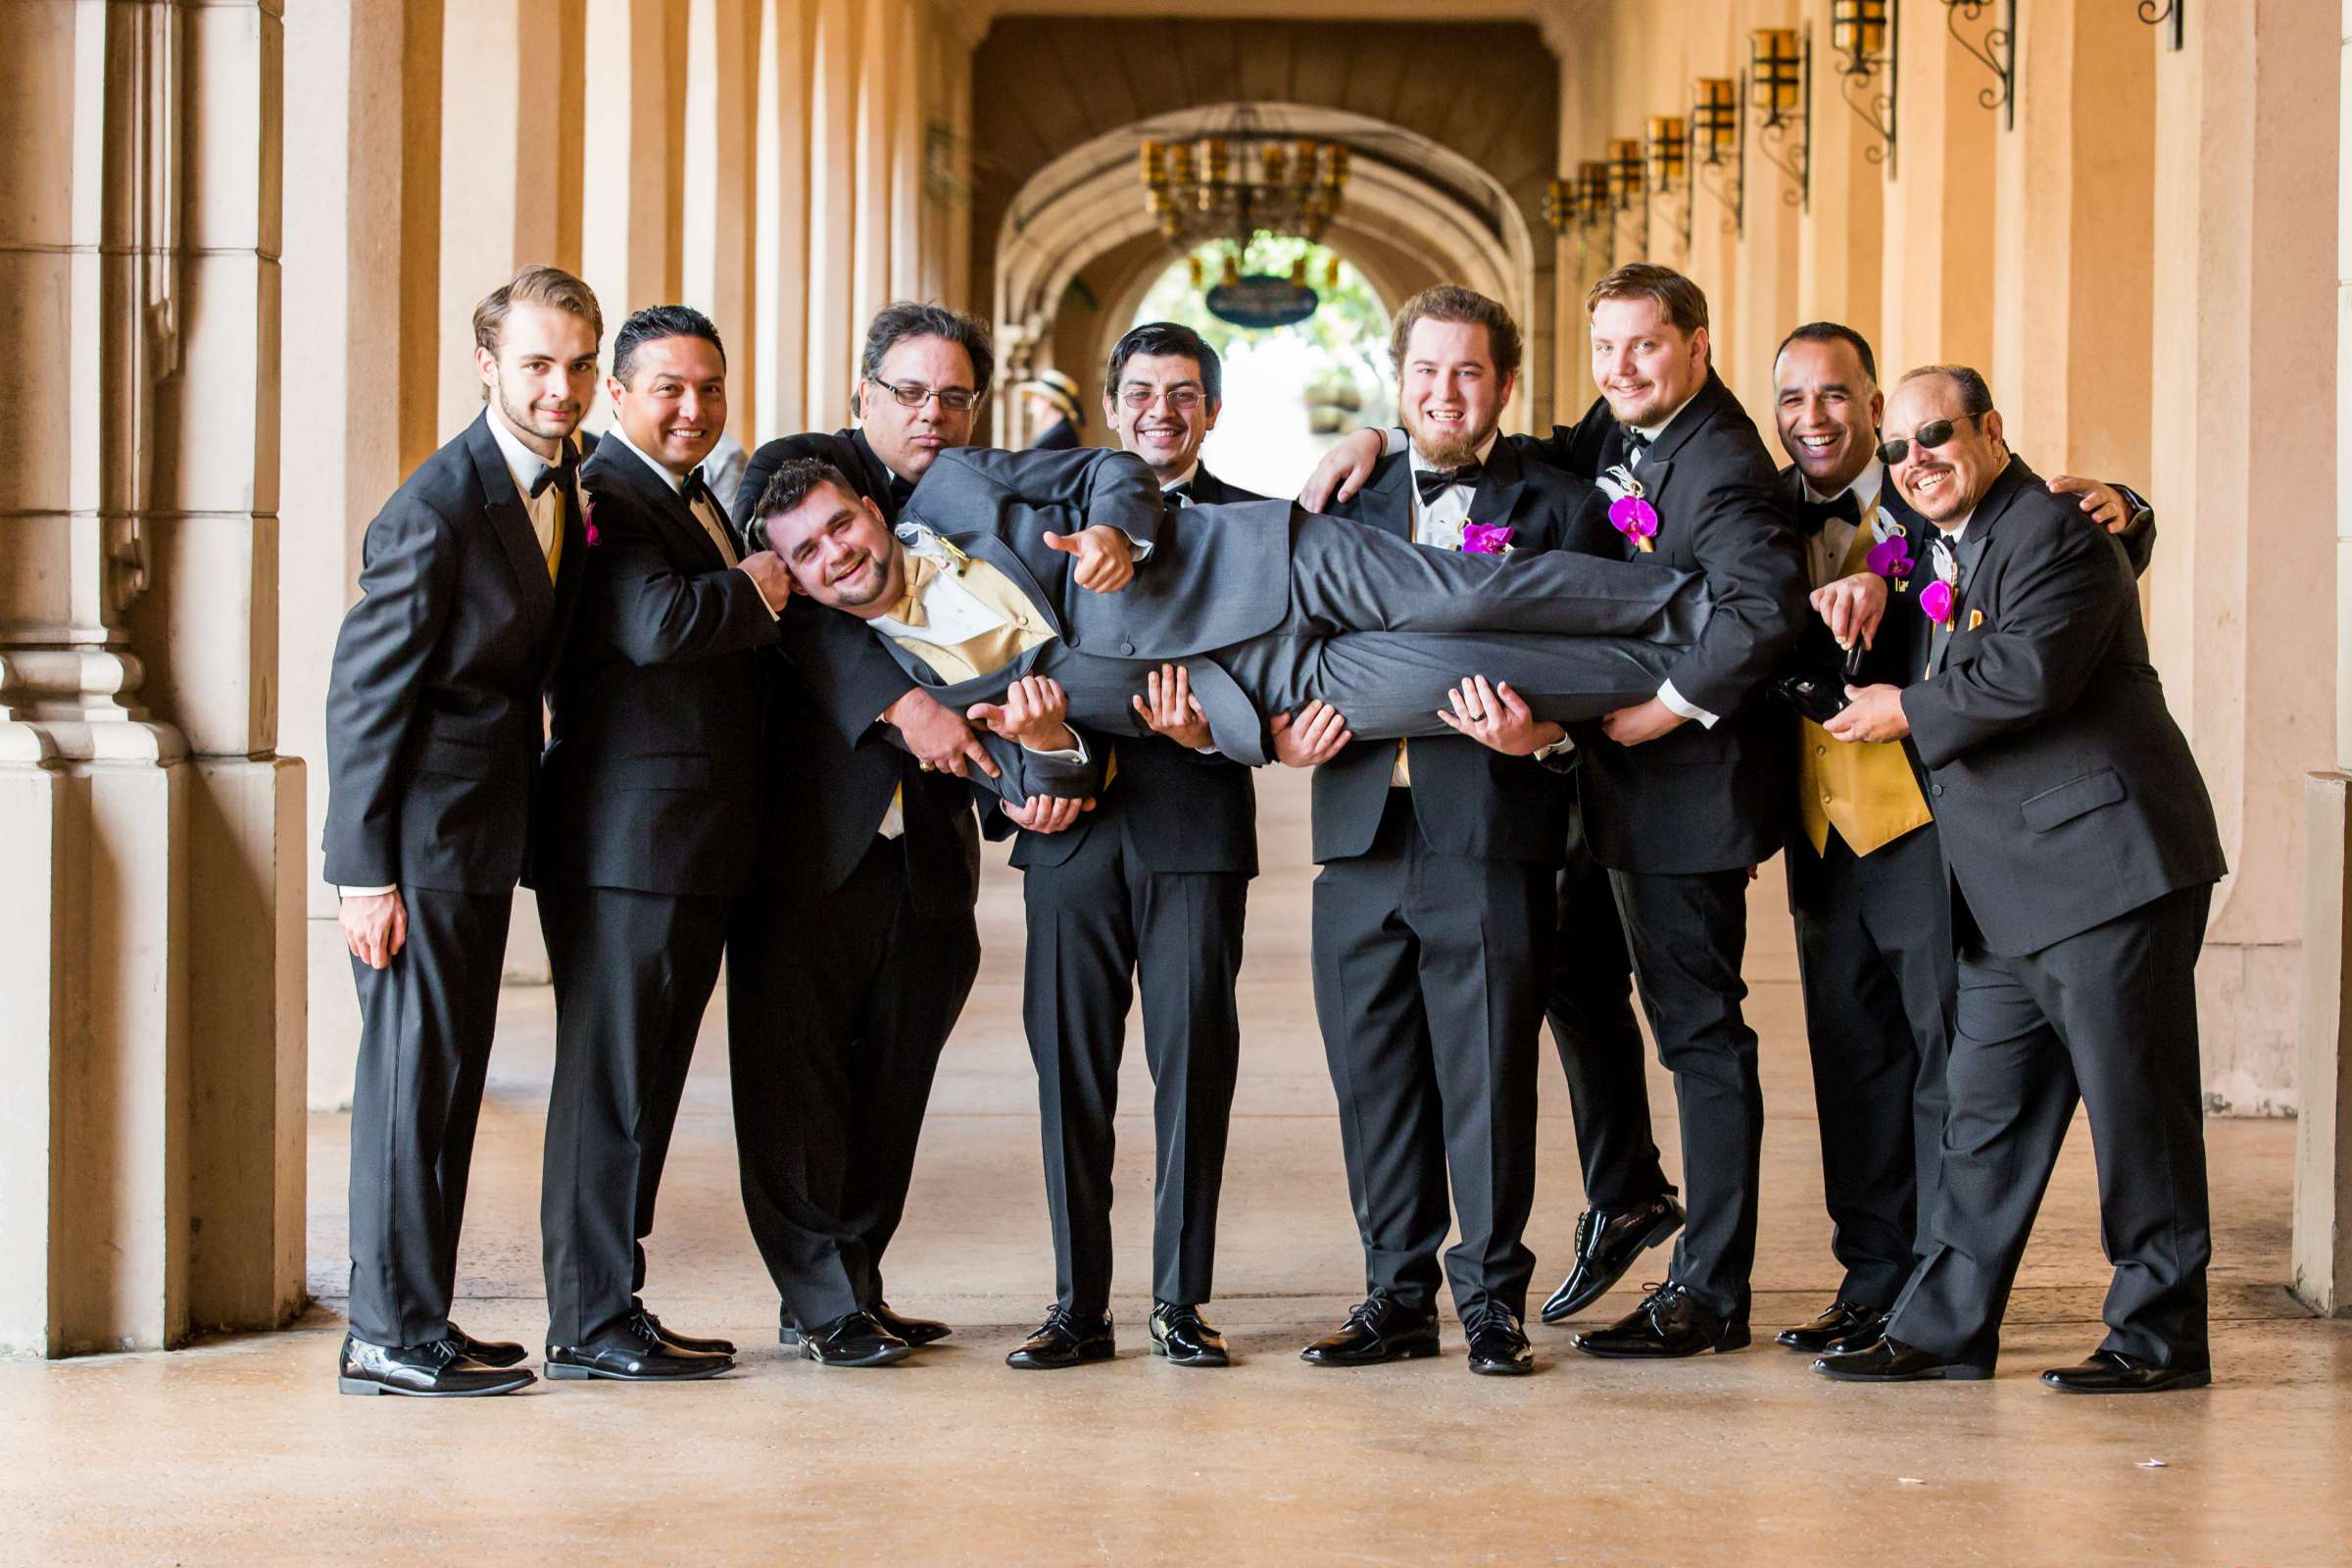 The Prado Wedding coordinated by Breezy Day Weddings, Aalis and Michael Wedding Photo #44 by True Photography